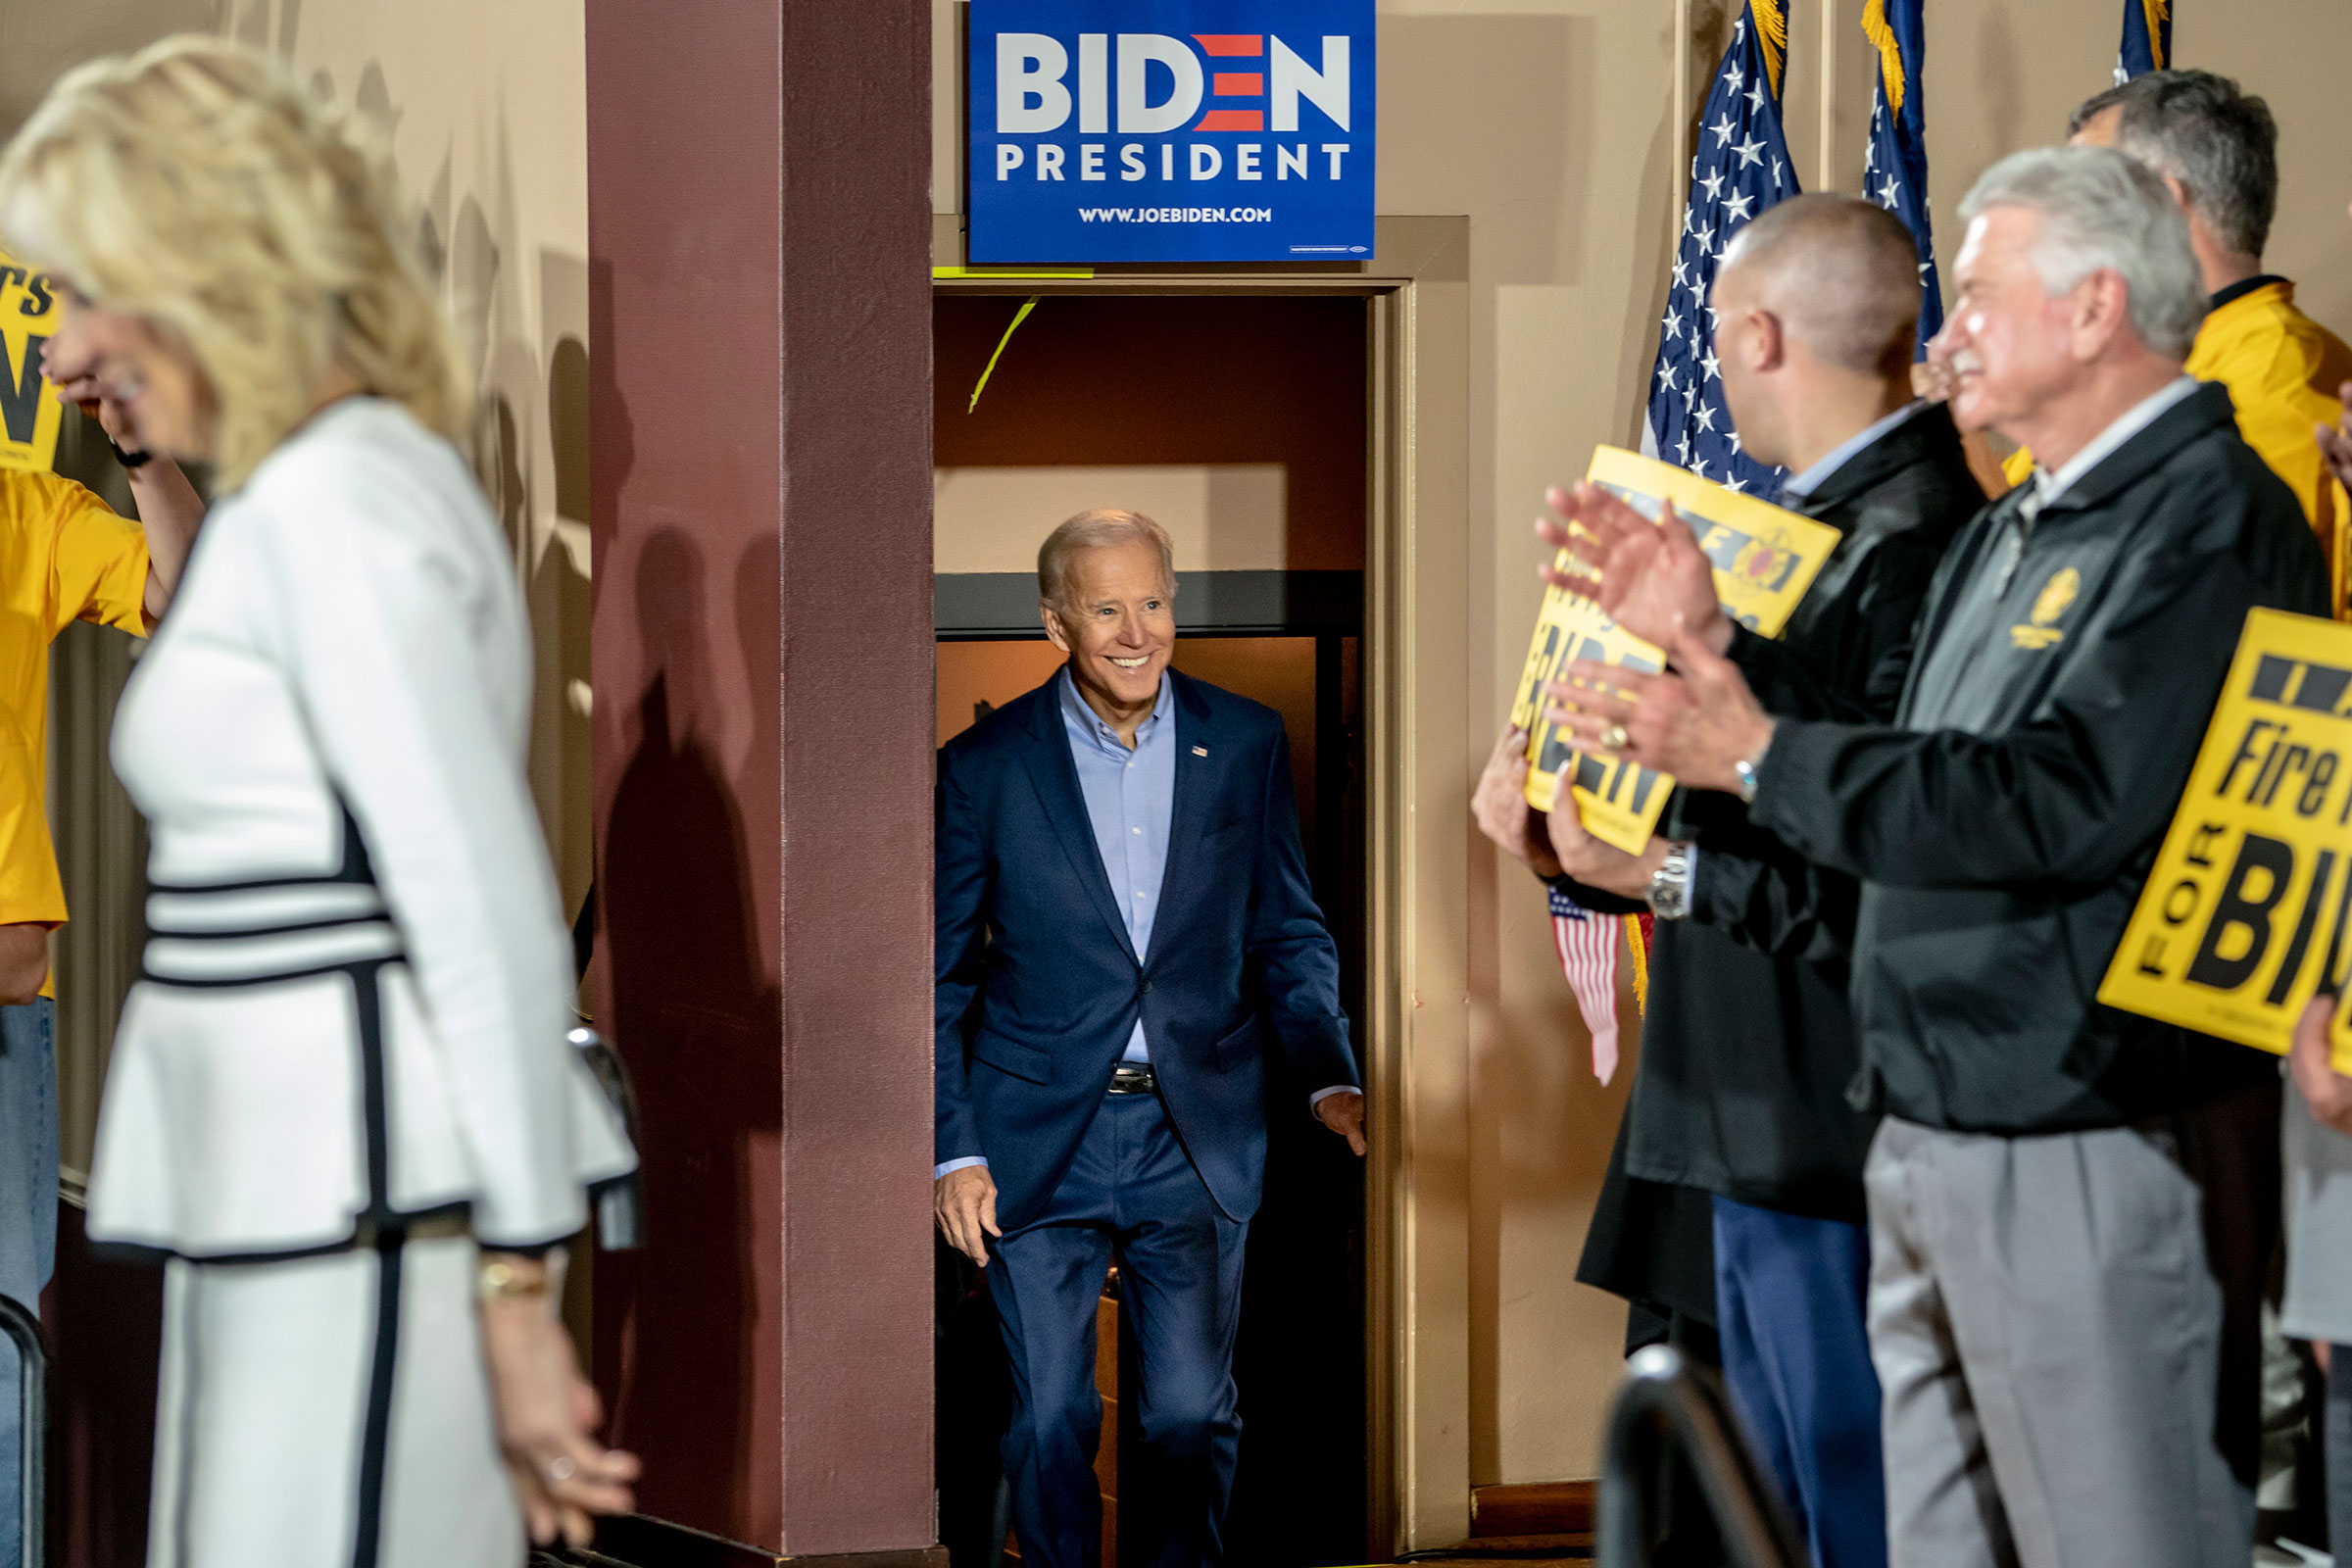 Biden made his first campaign stop on April 29 at the Teamsters Local 249 hall in Pittsburgh.